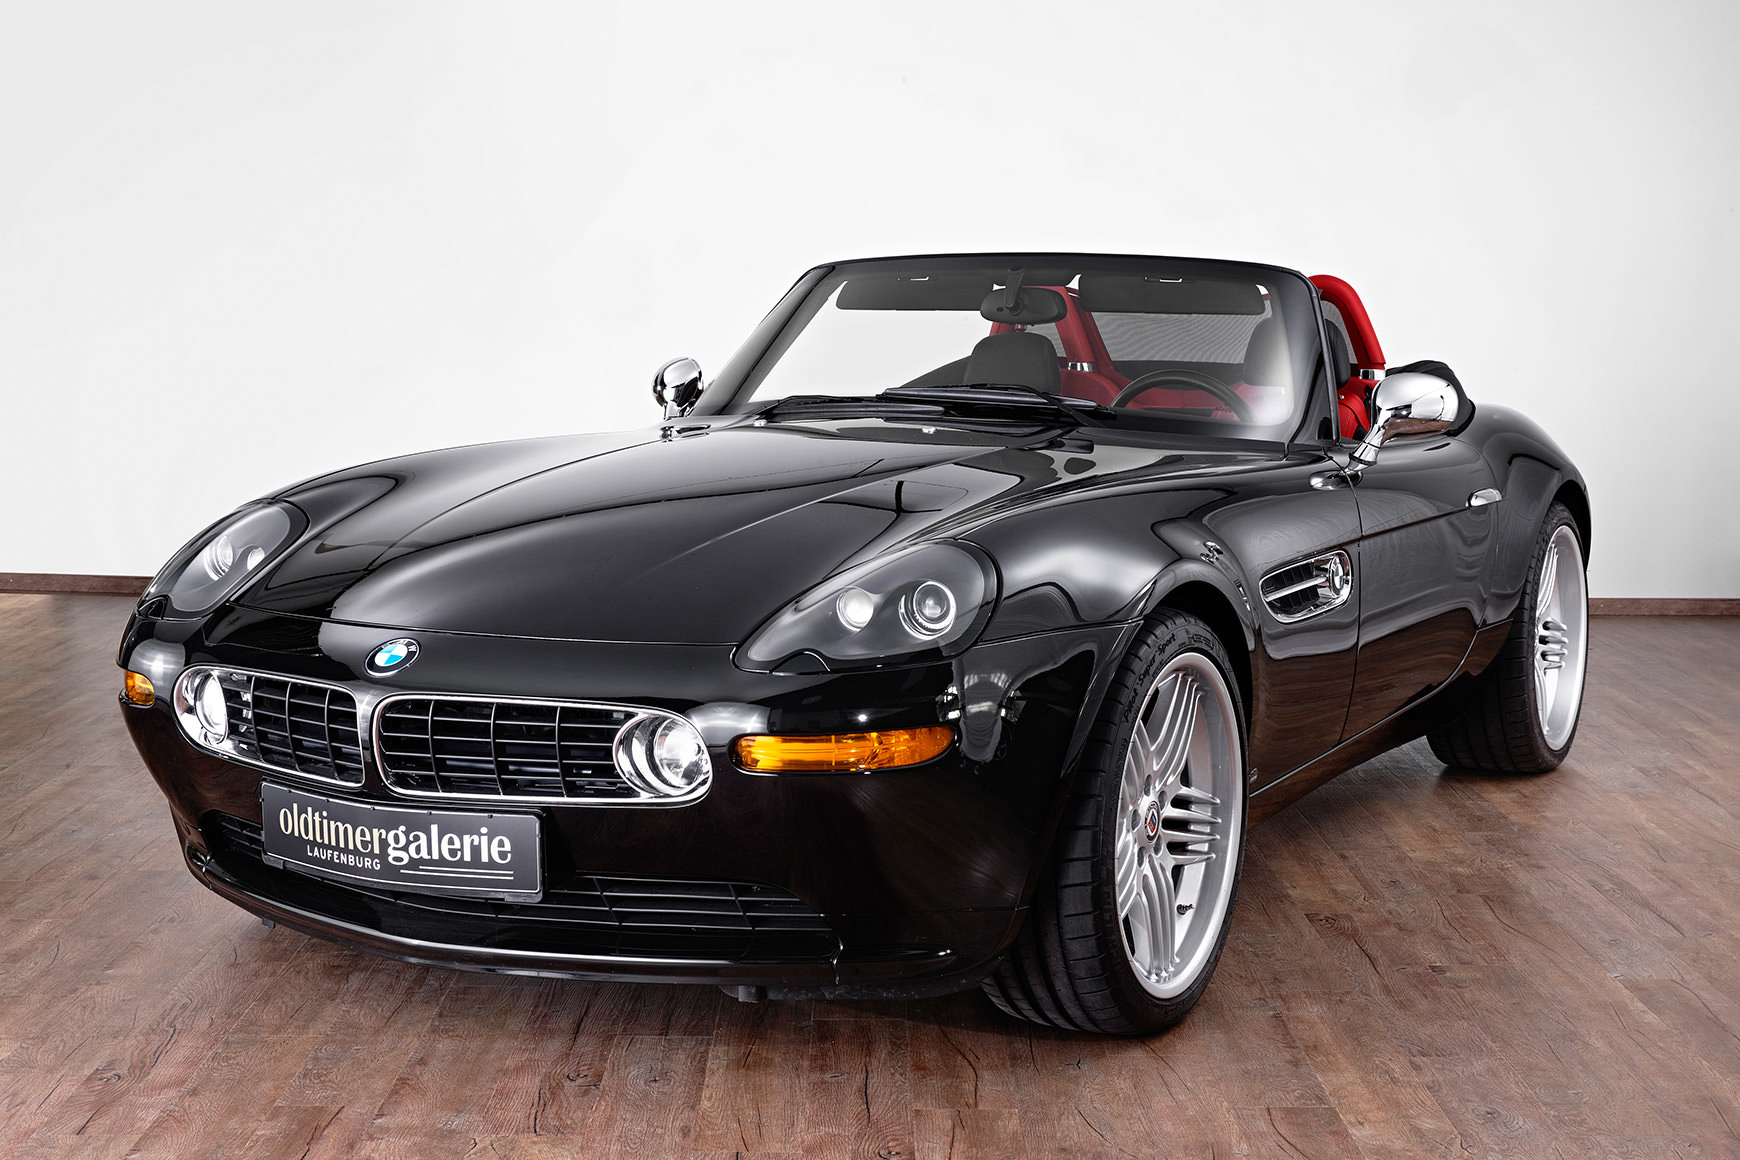 Bmw Z8 E52 Cars News Videos Images Websites